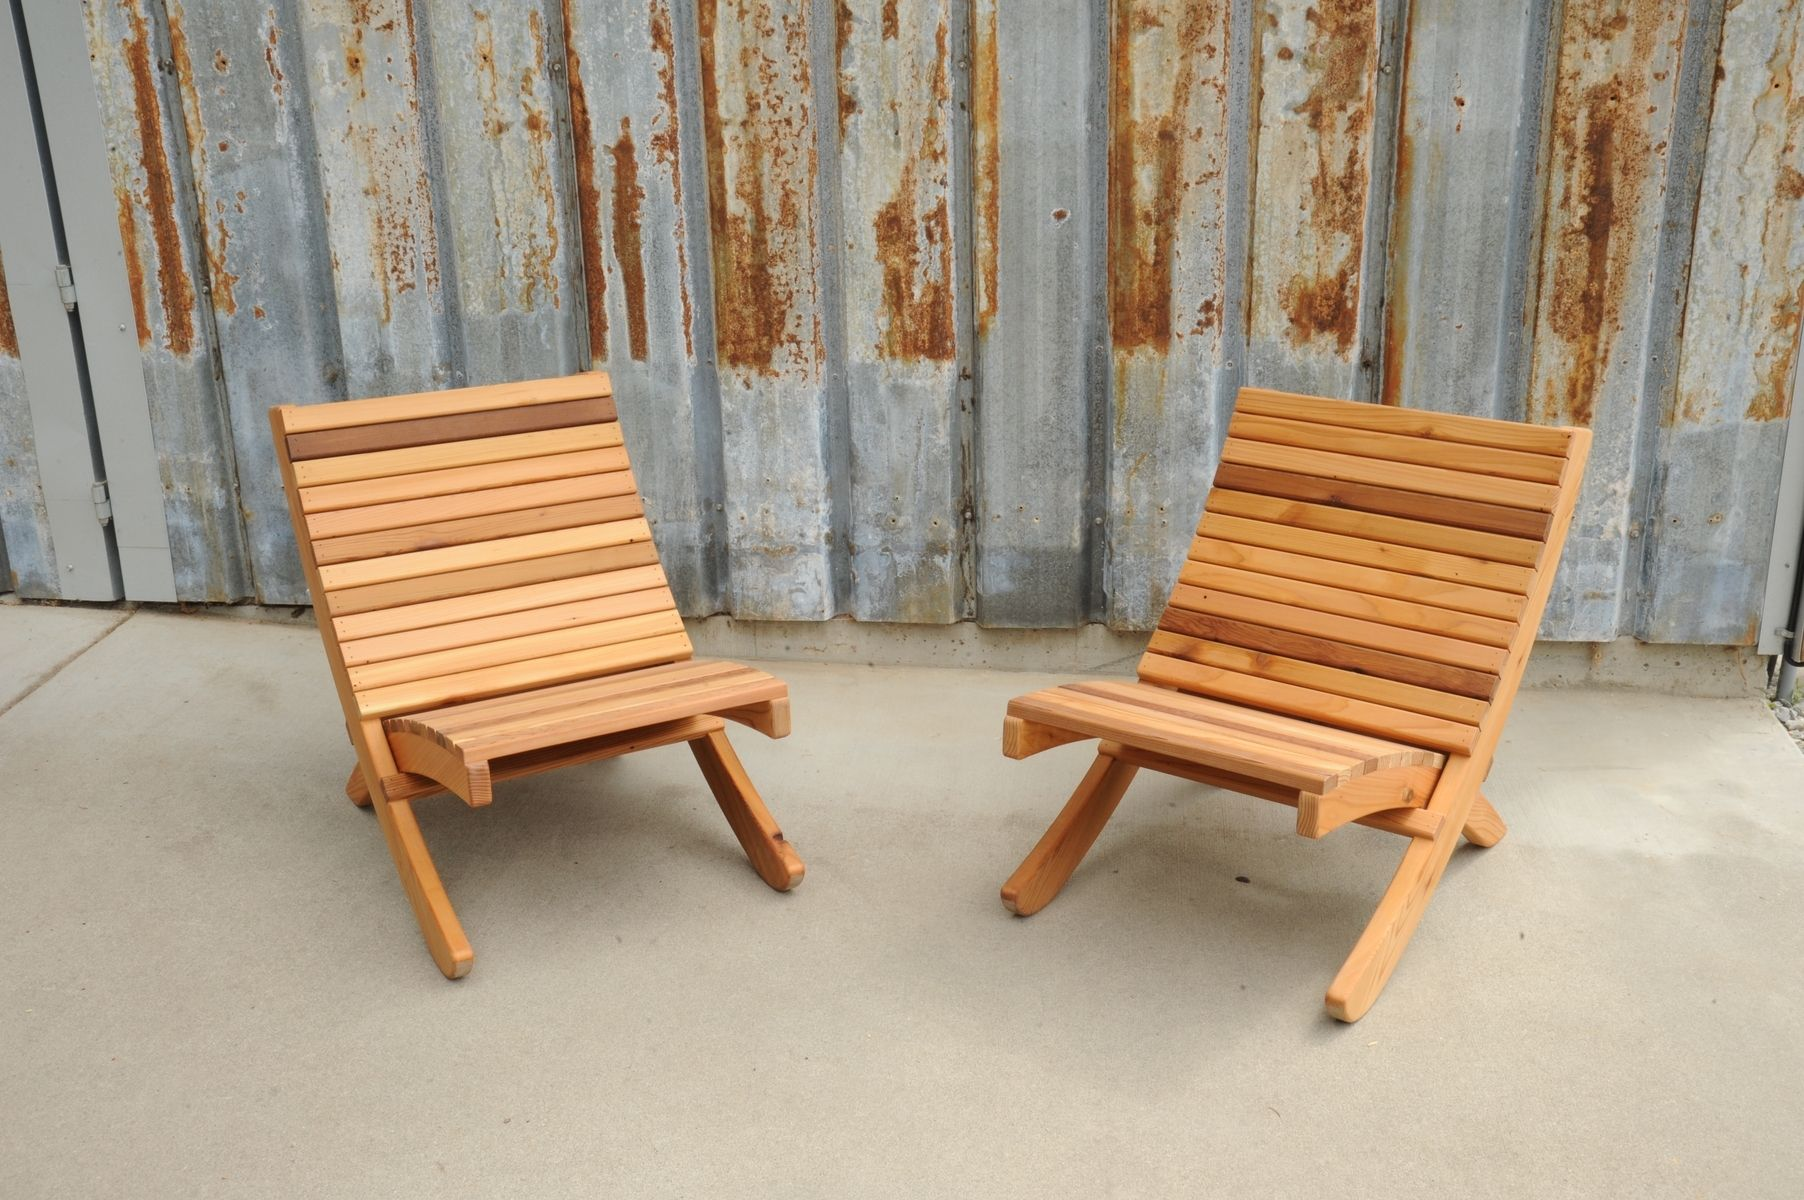 Wondrous Handmade Outdoor Chairs That Can Easily Be Folded And Stored Download Free Architecture Designs Rallybritishbridgeorg